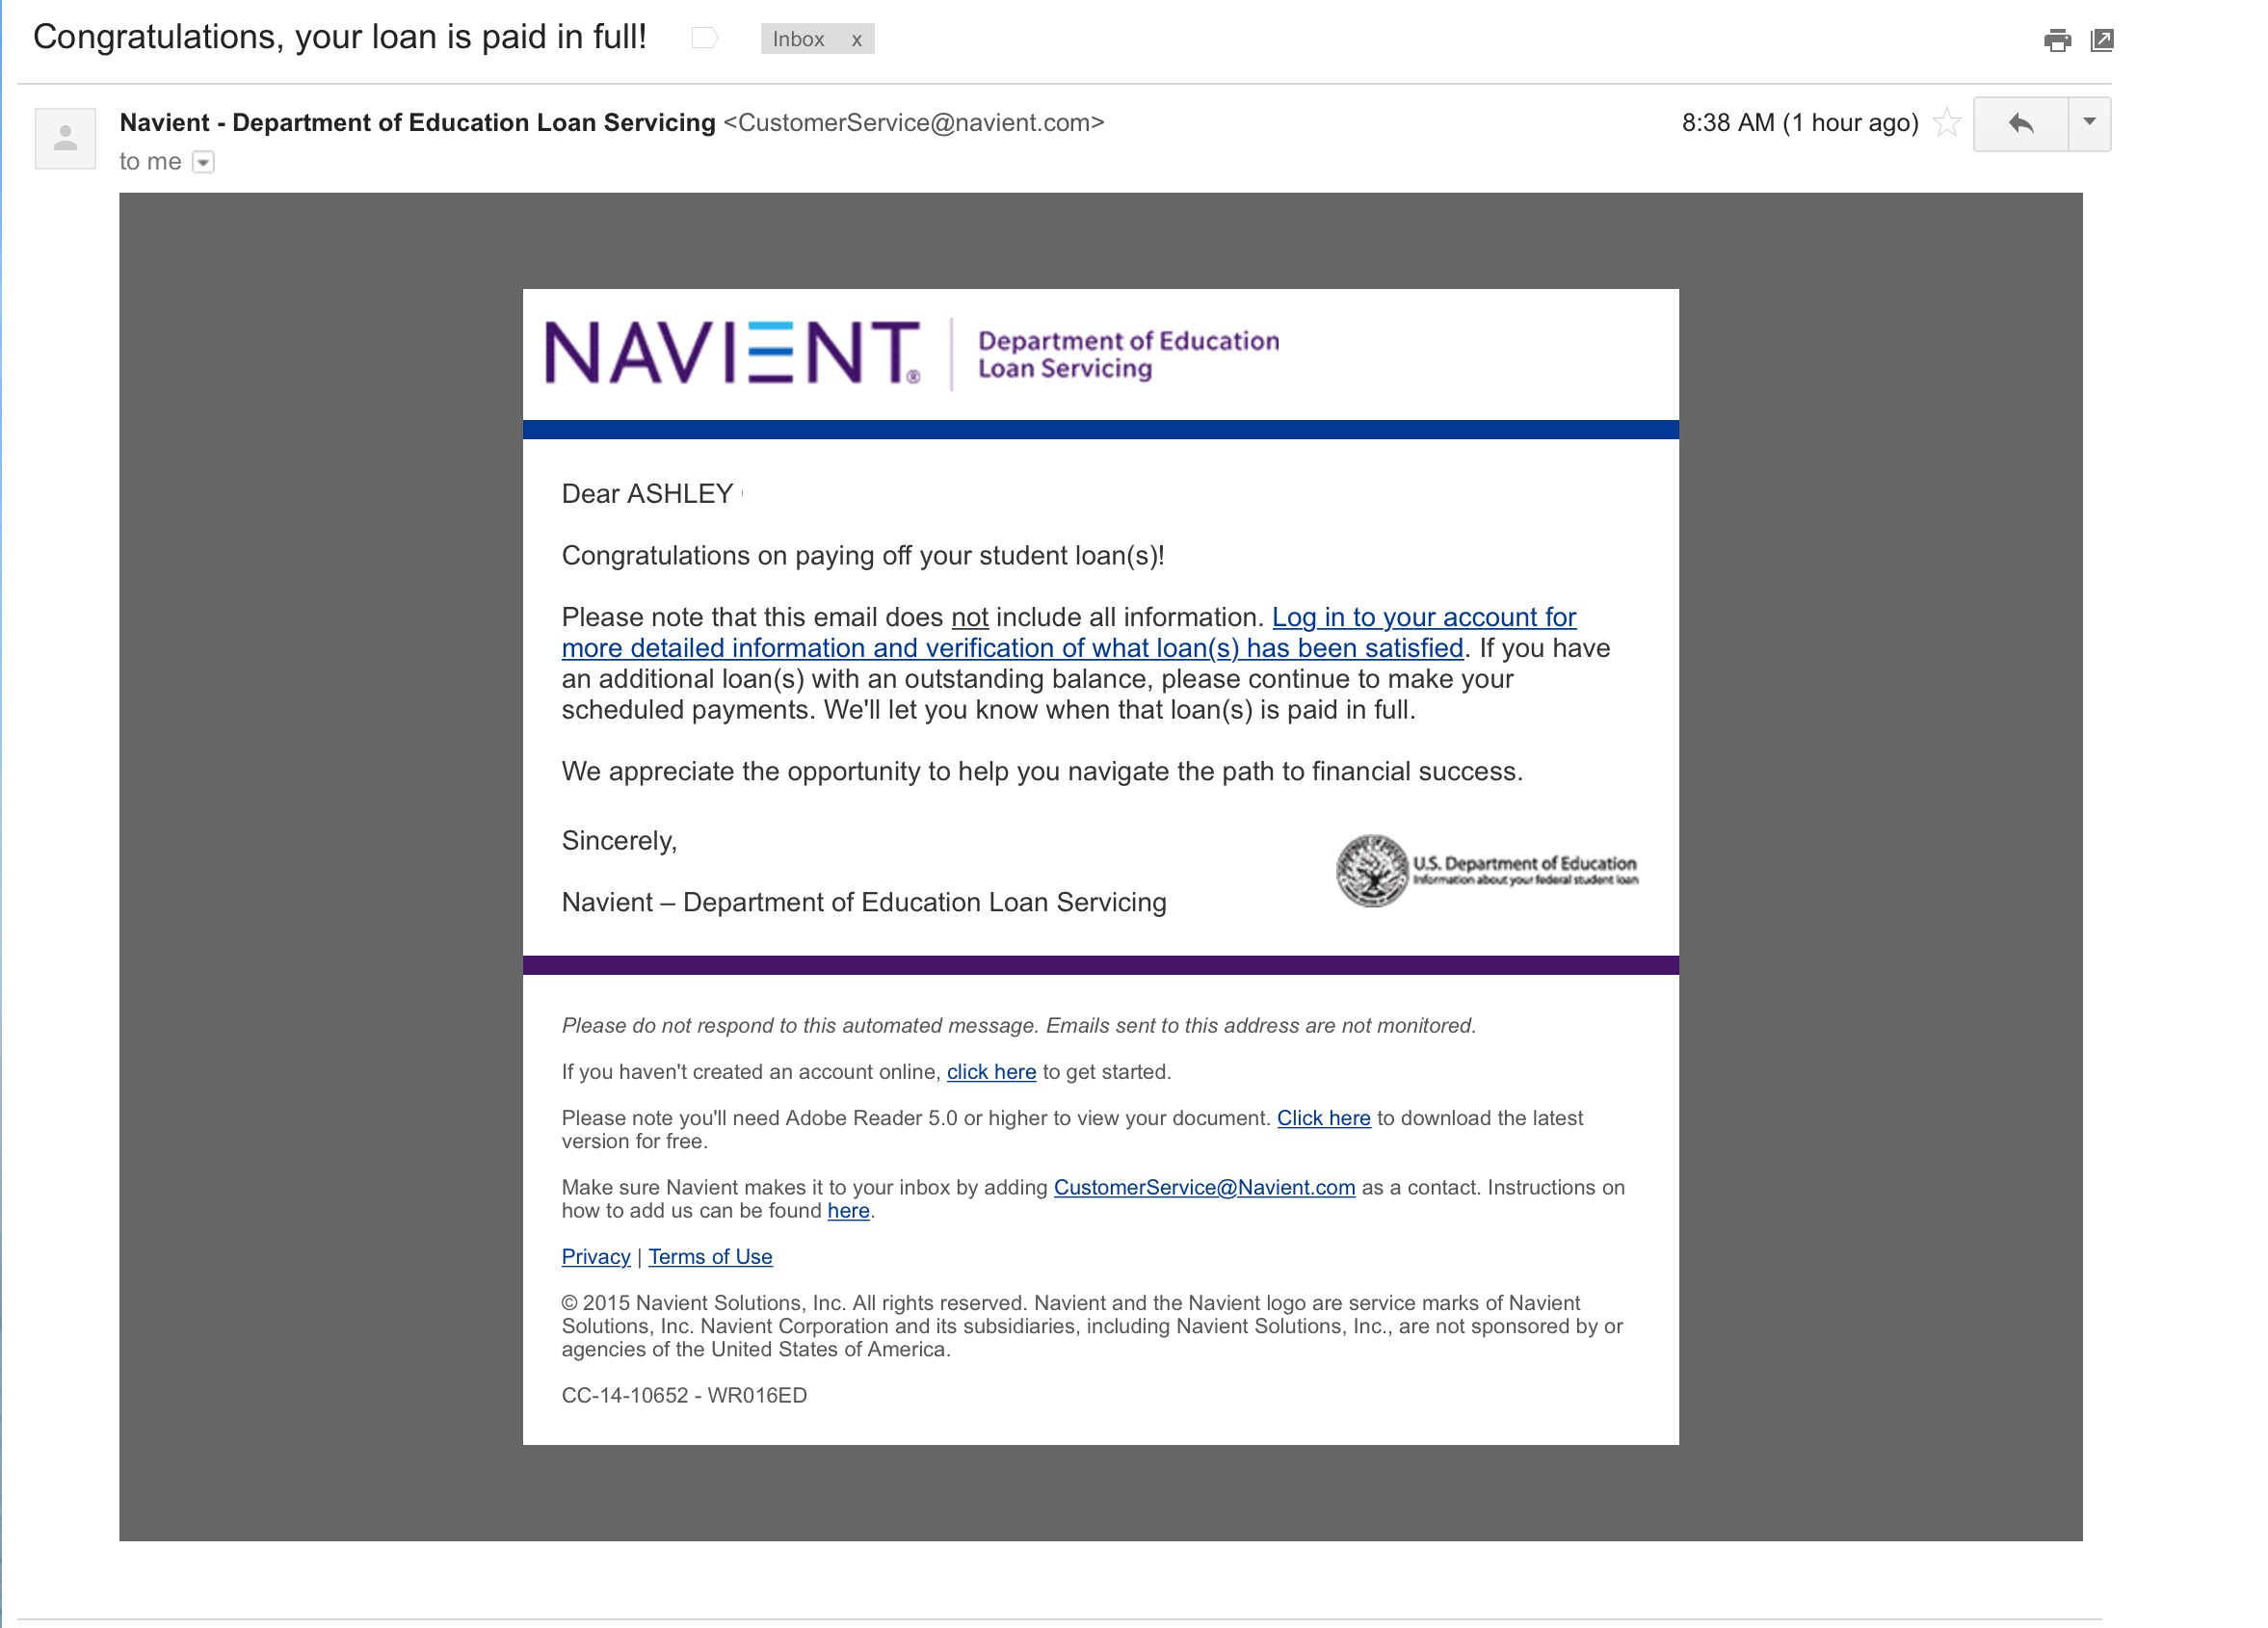 navient | Blogging Away Debt